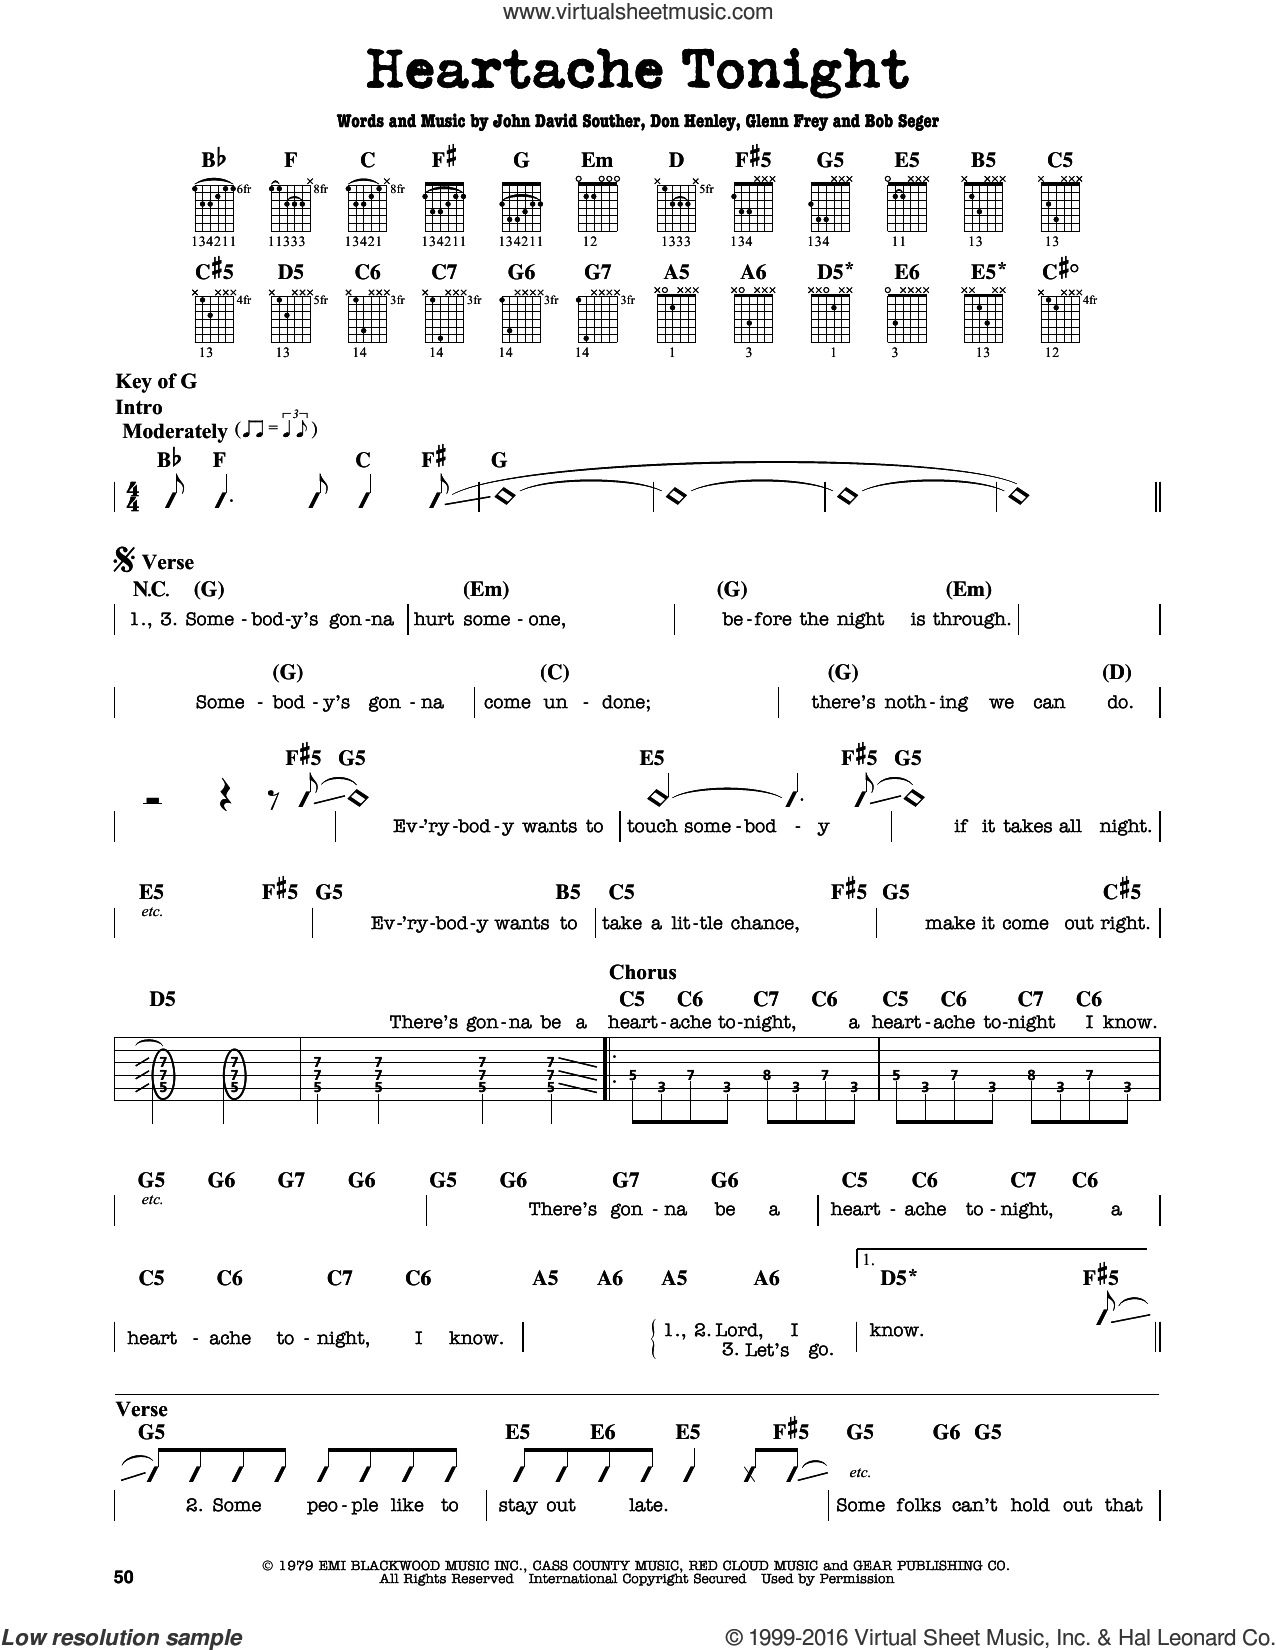 Heartache Tonight sheet music for guitar solo (lead sheet) by John David Souther, Eagles, Bob Seger, Don Henley and Glenn Frey. Score Image Preview.